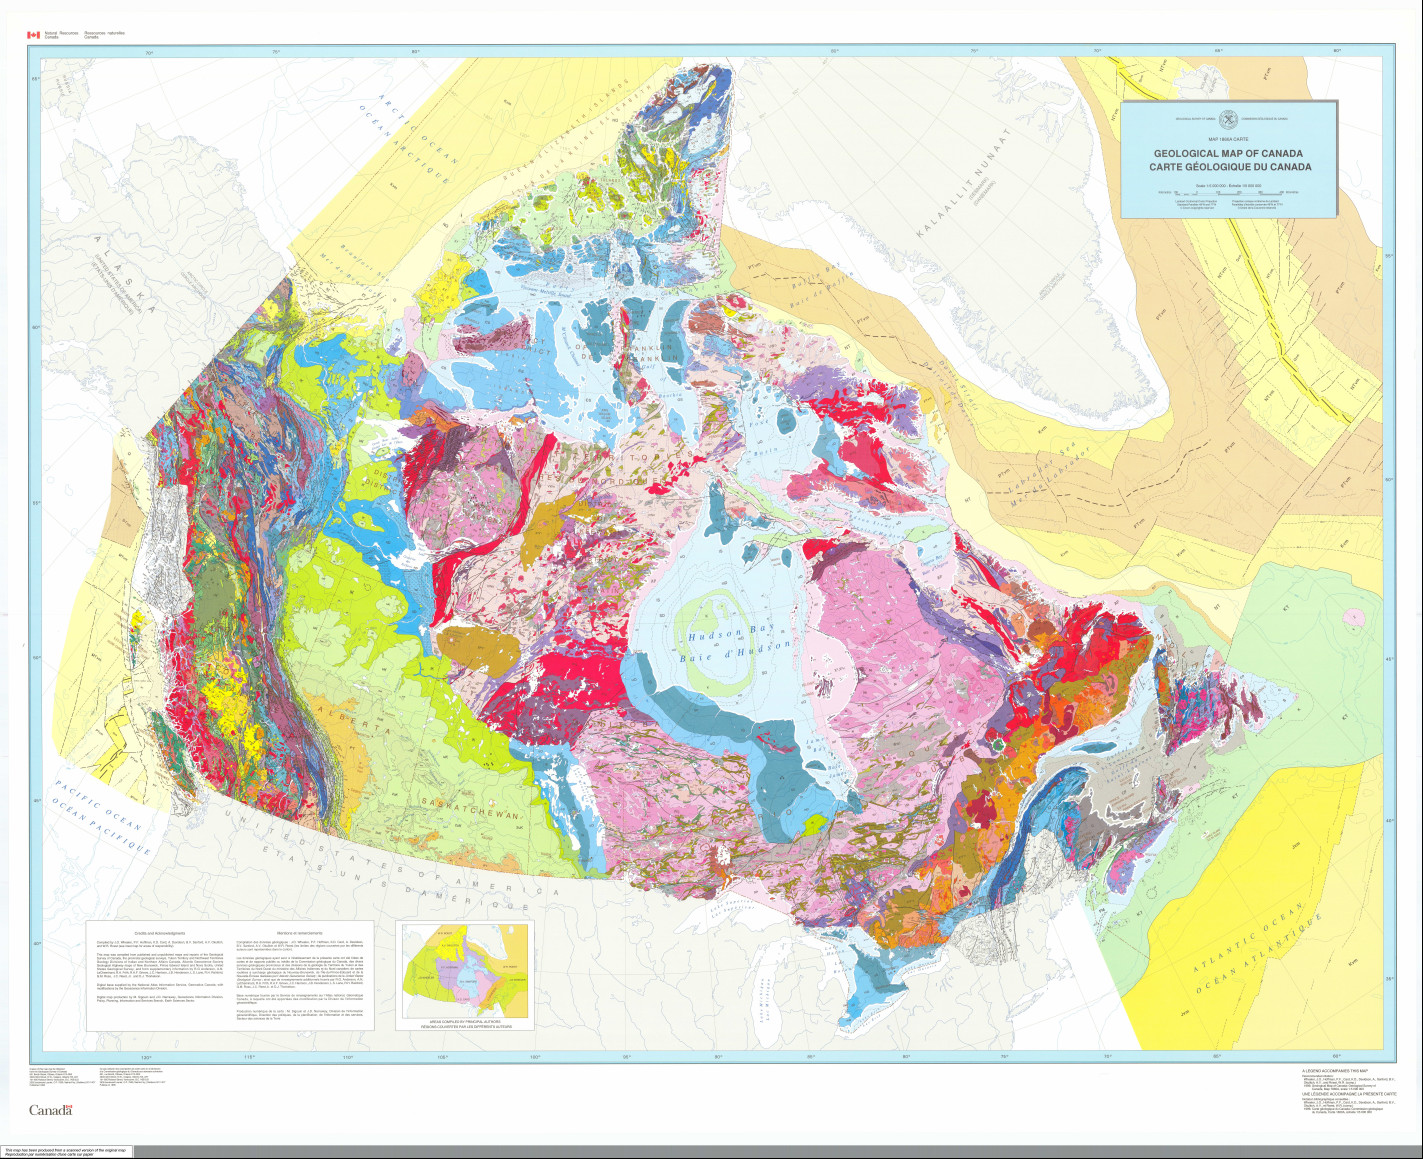 159 New Geological Map of Canada 1996 Sciencegcca